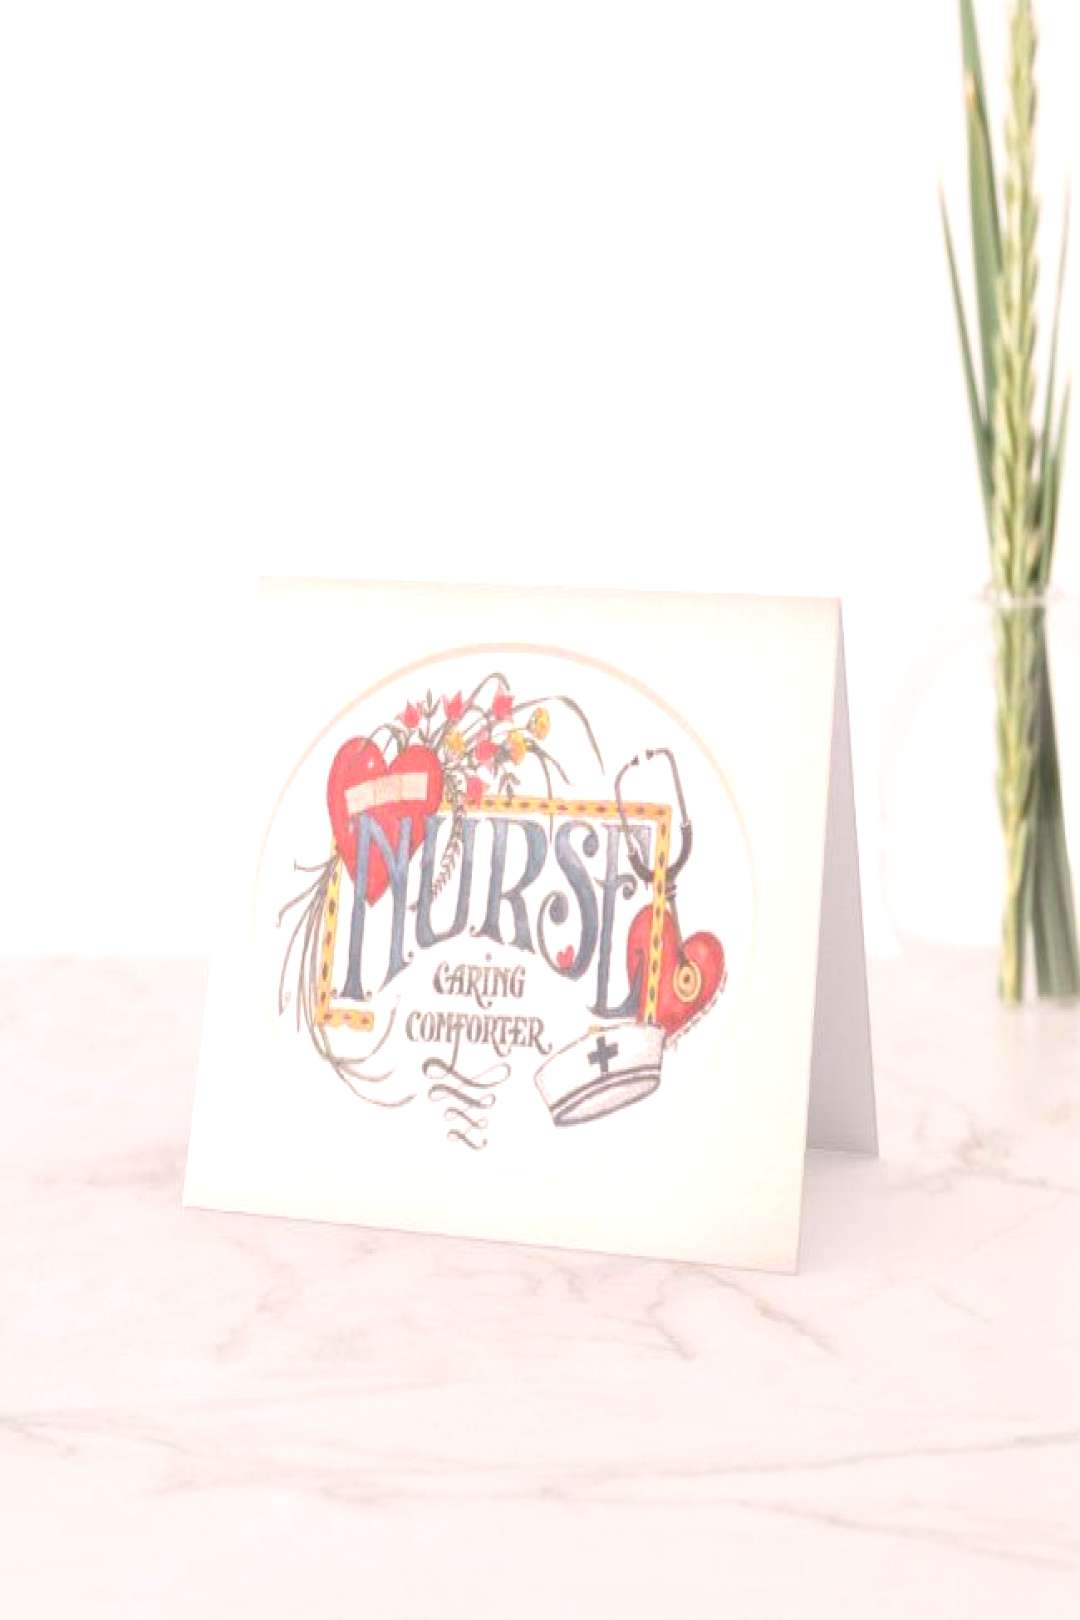 Nurse's Day Greeting Card